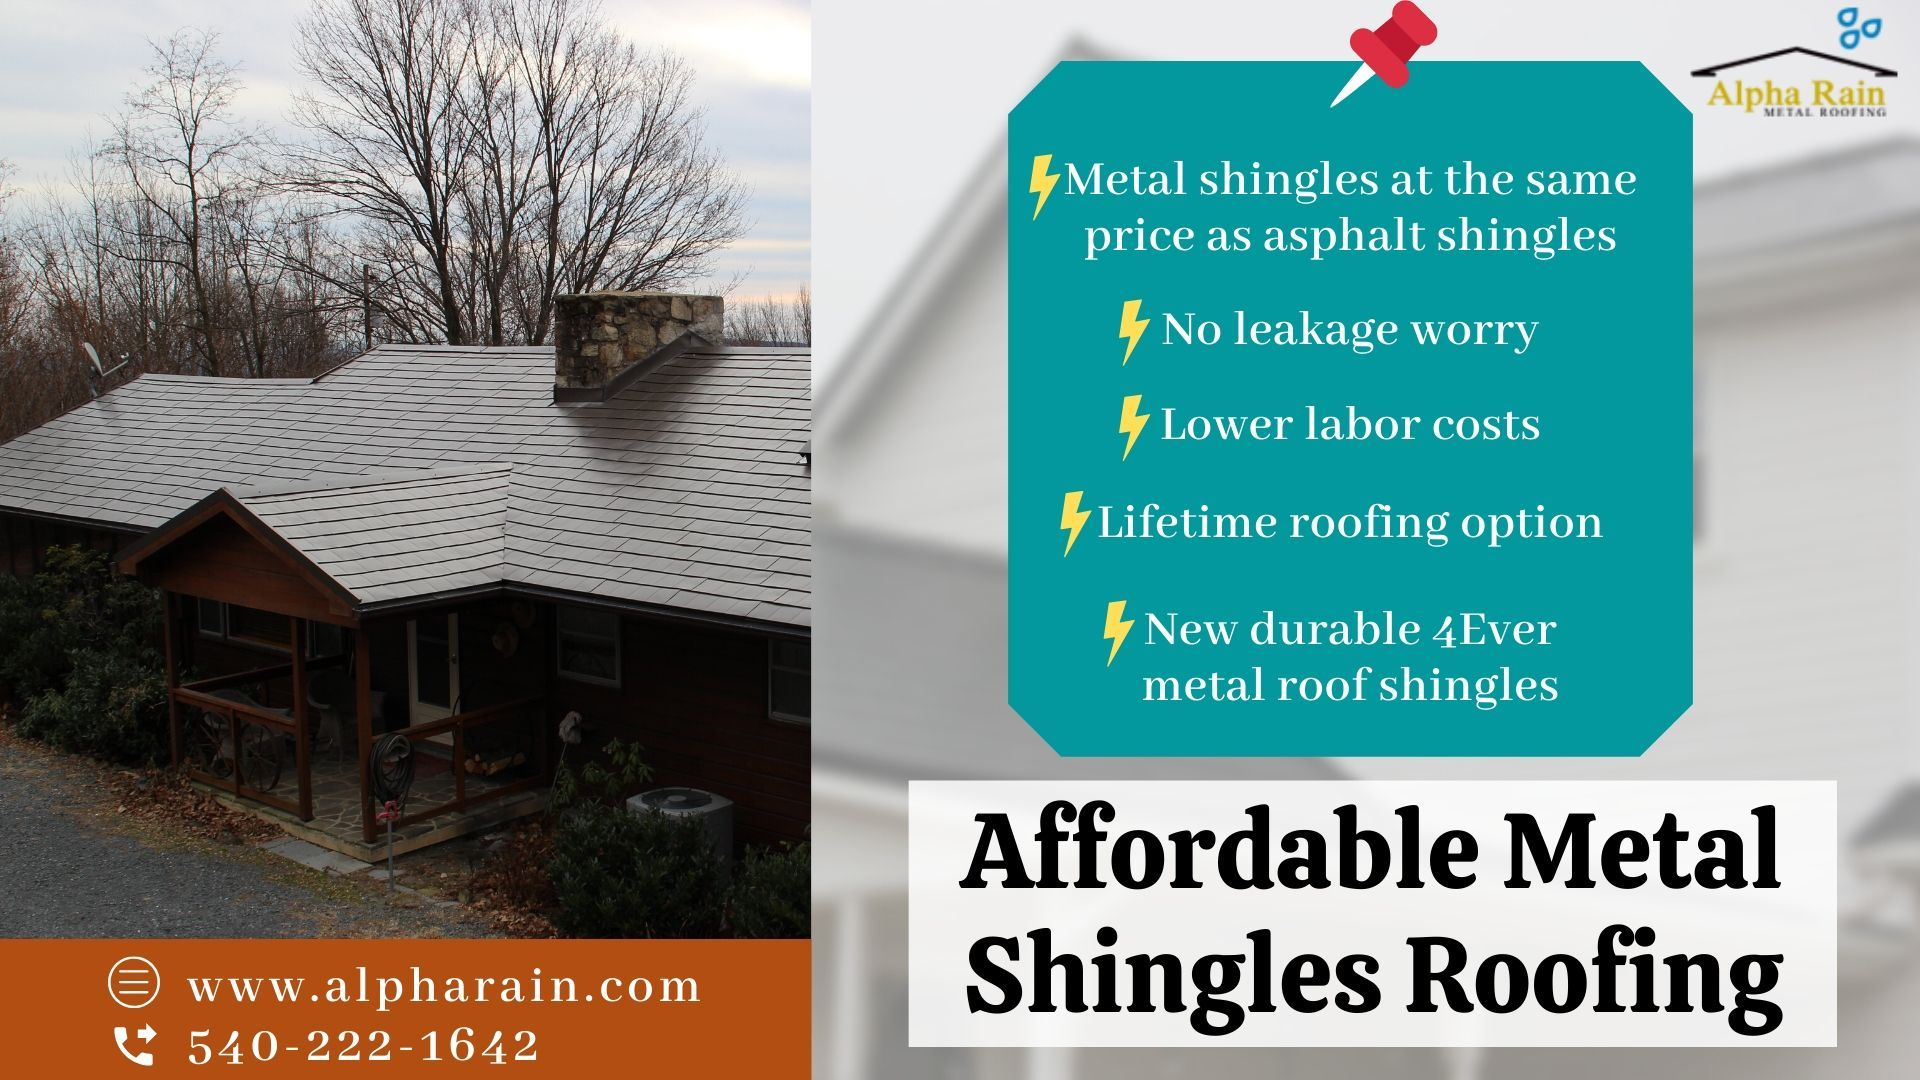 We Provide You Inexpensive And Easy Installation Metal Shingles Roofing Our New 4ever Metal Shingle Is Safe To Wal In 2020 Metal Shingles Shingling Metal Shingle Roof